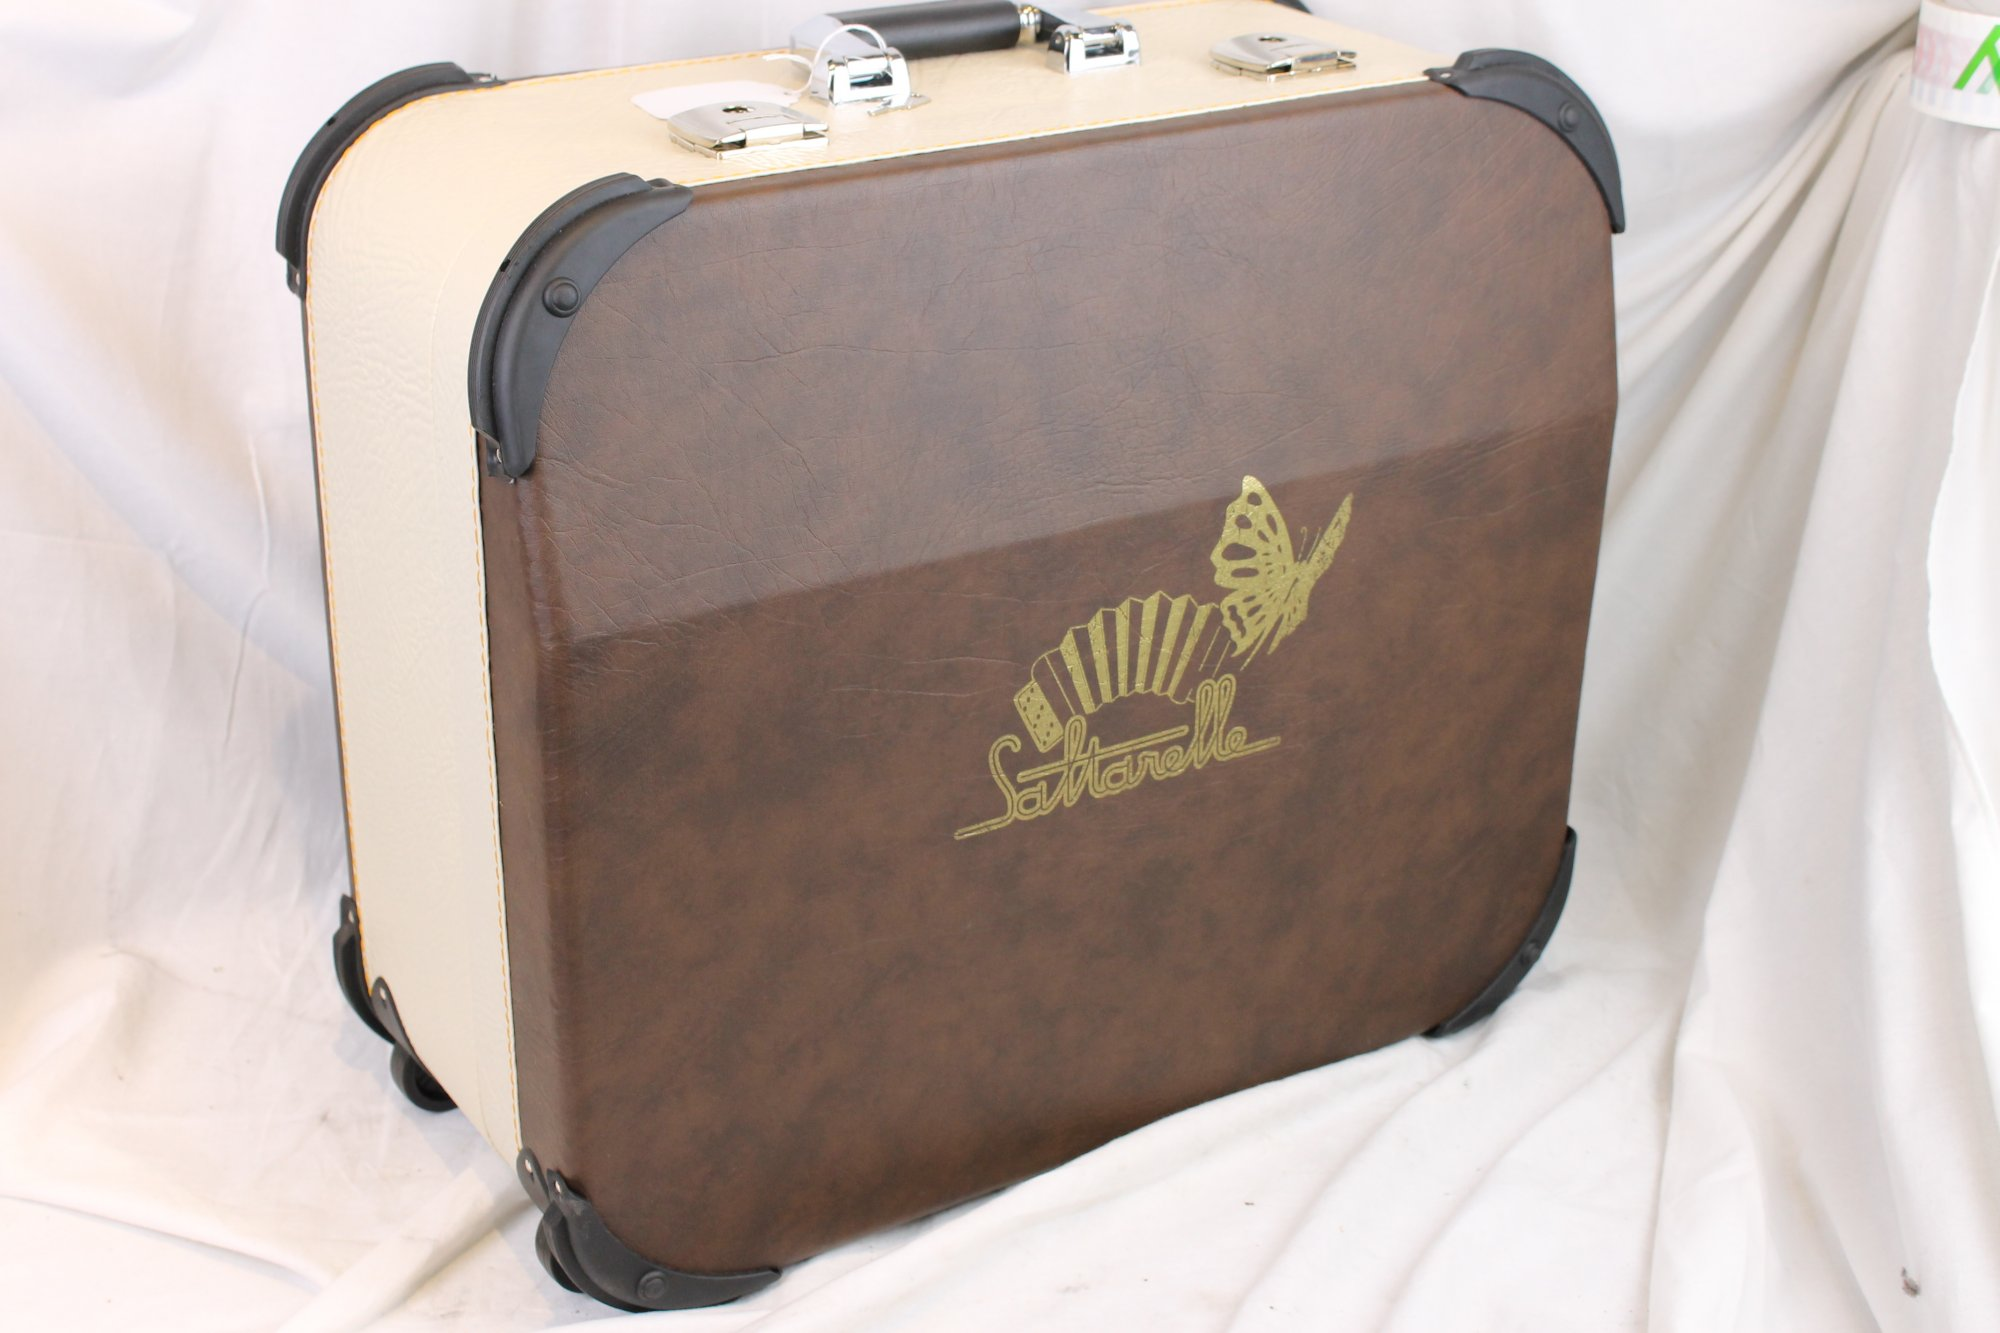 NEW Chocolate Tan Saltarelle Trolley Hard Case for Accordion 20.25 x 17.25 x 9.5